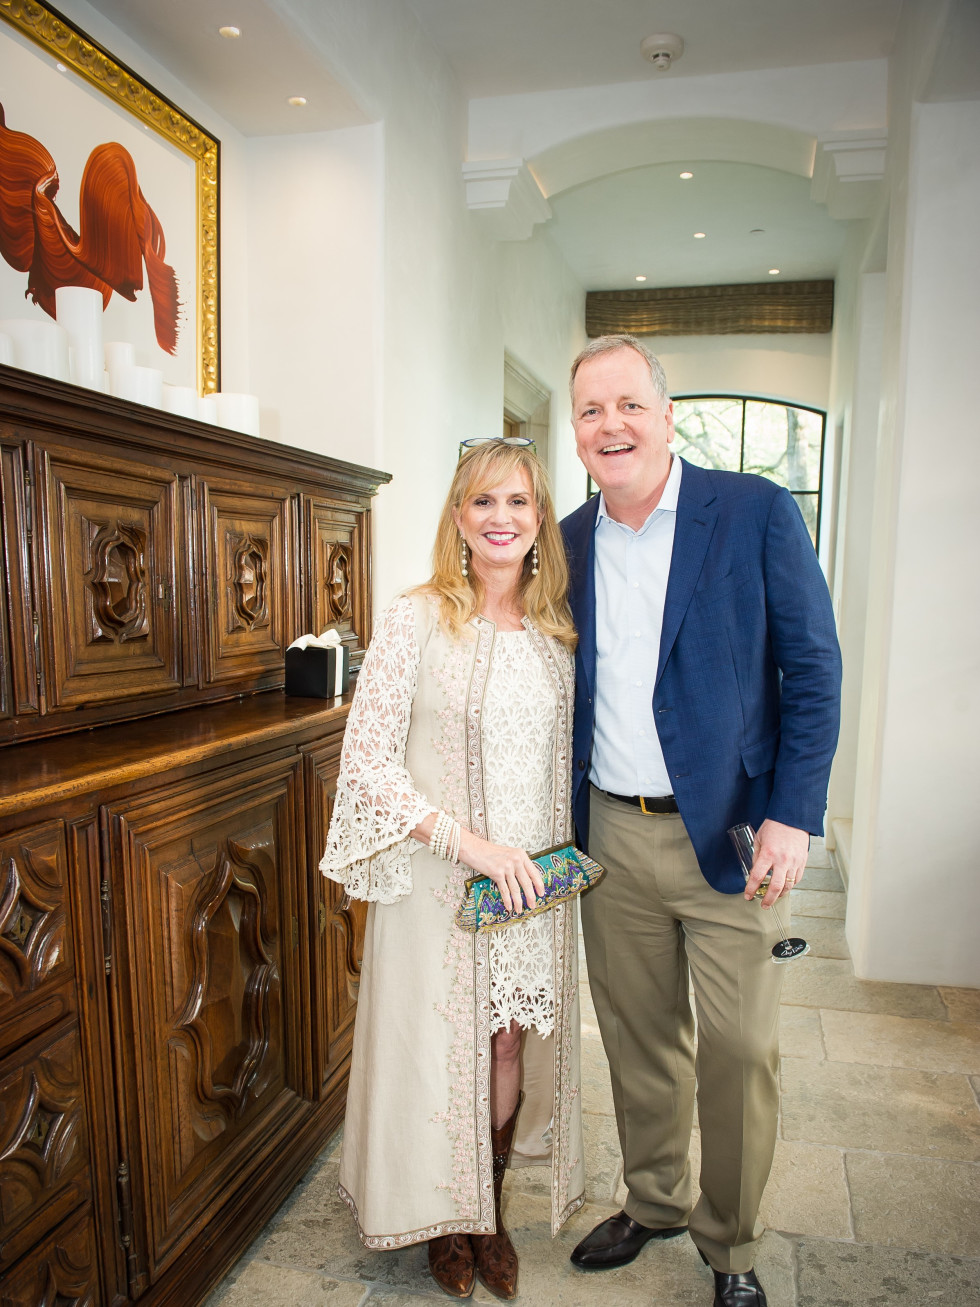 Gwen and Doug Parker, United Way